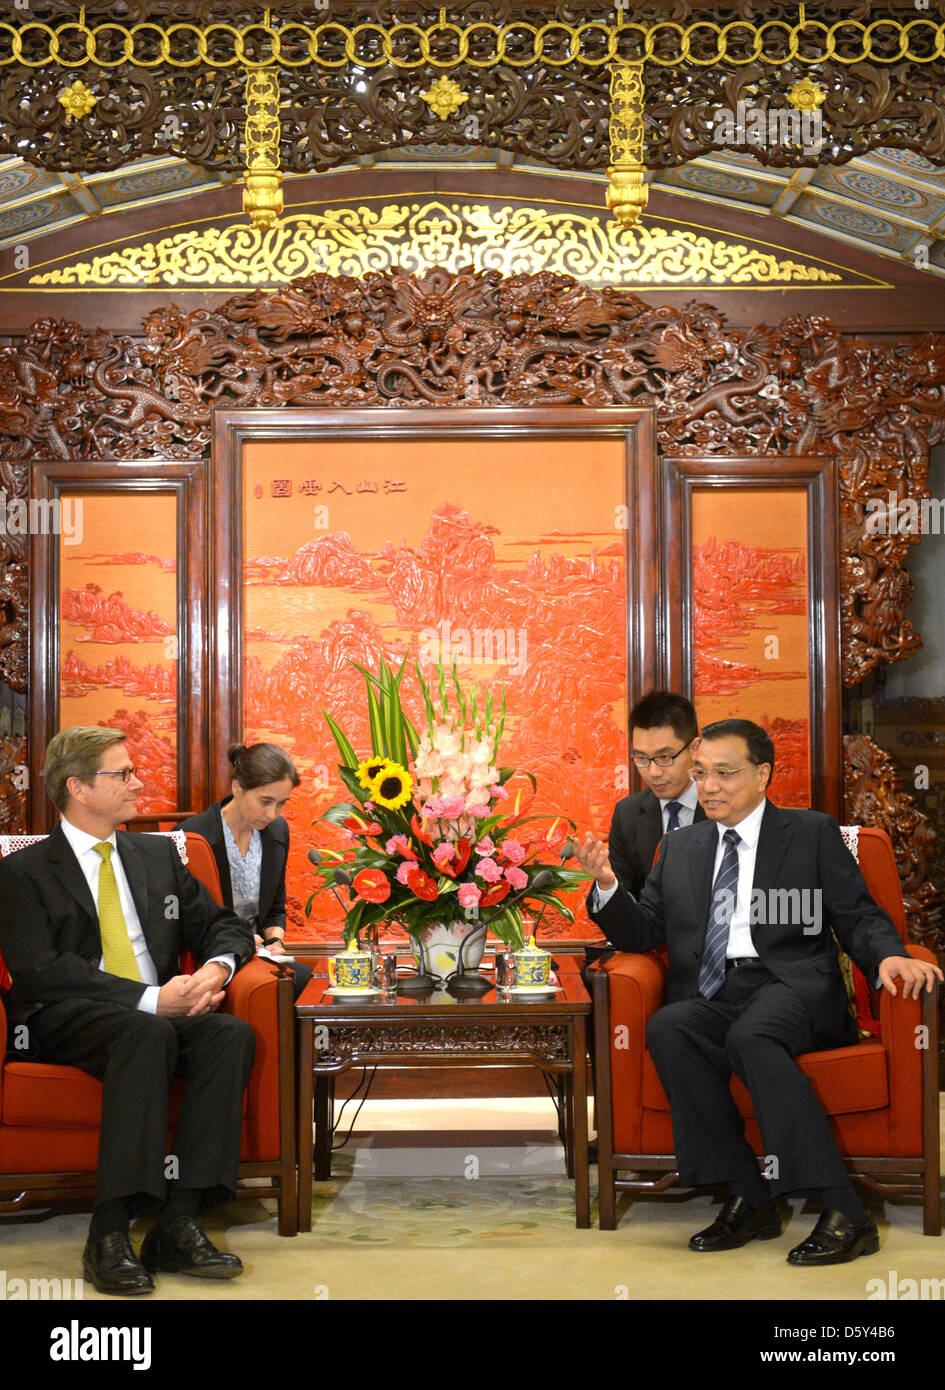 German Foreign Minister Guido Westerwelle (L) meets Vice-Premier of the People's Republic of China Li Keqiang - Stock Image